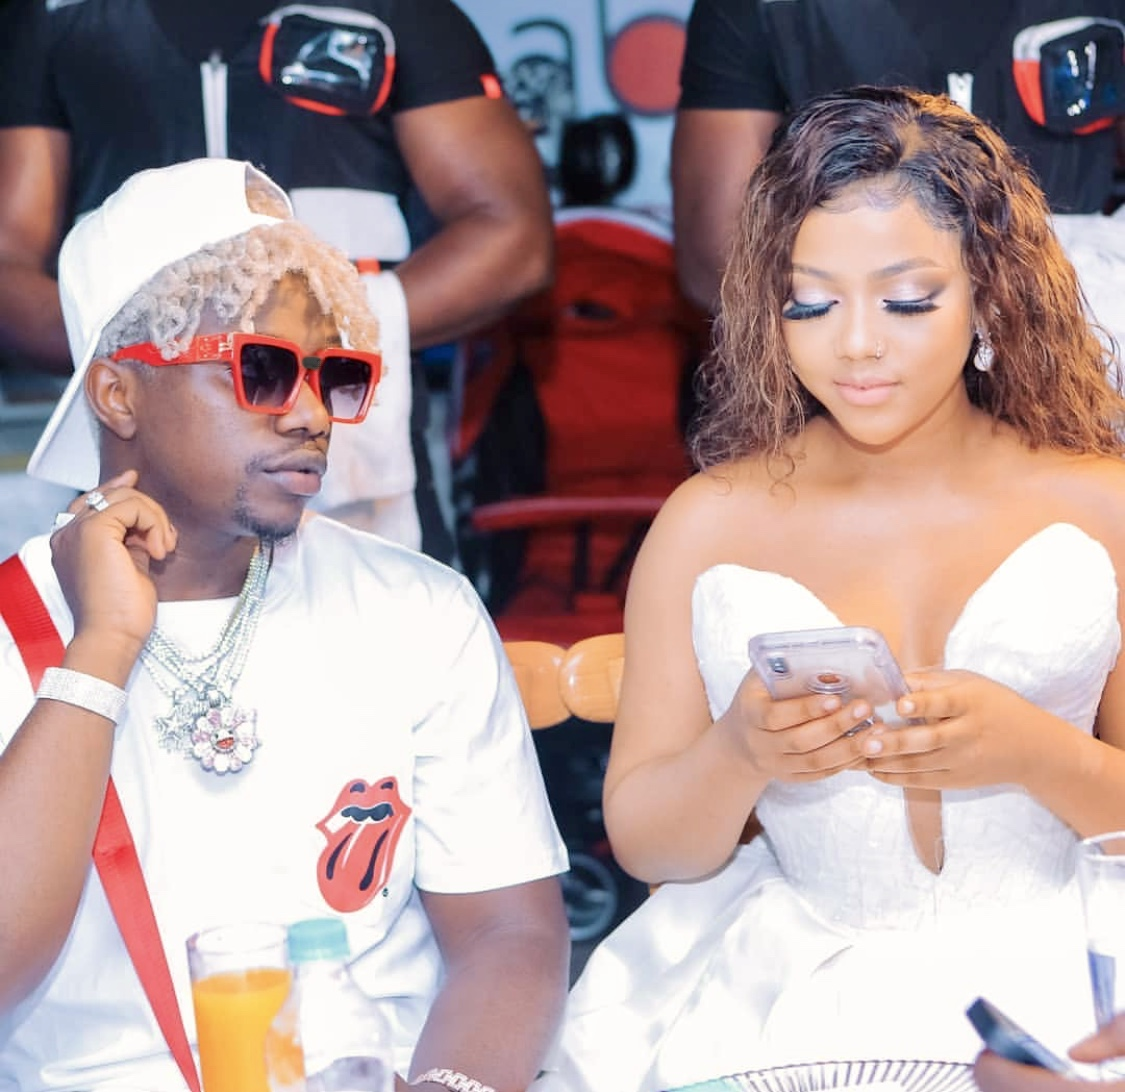 Drama! Rayvanny accused of cheating on his baby mama with Elizabeth Micheal